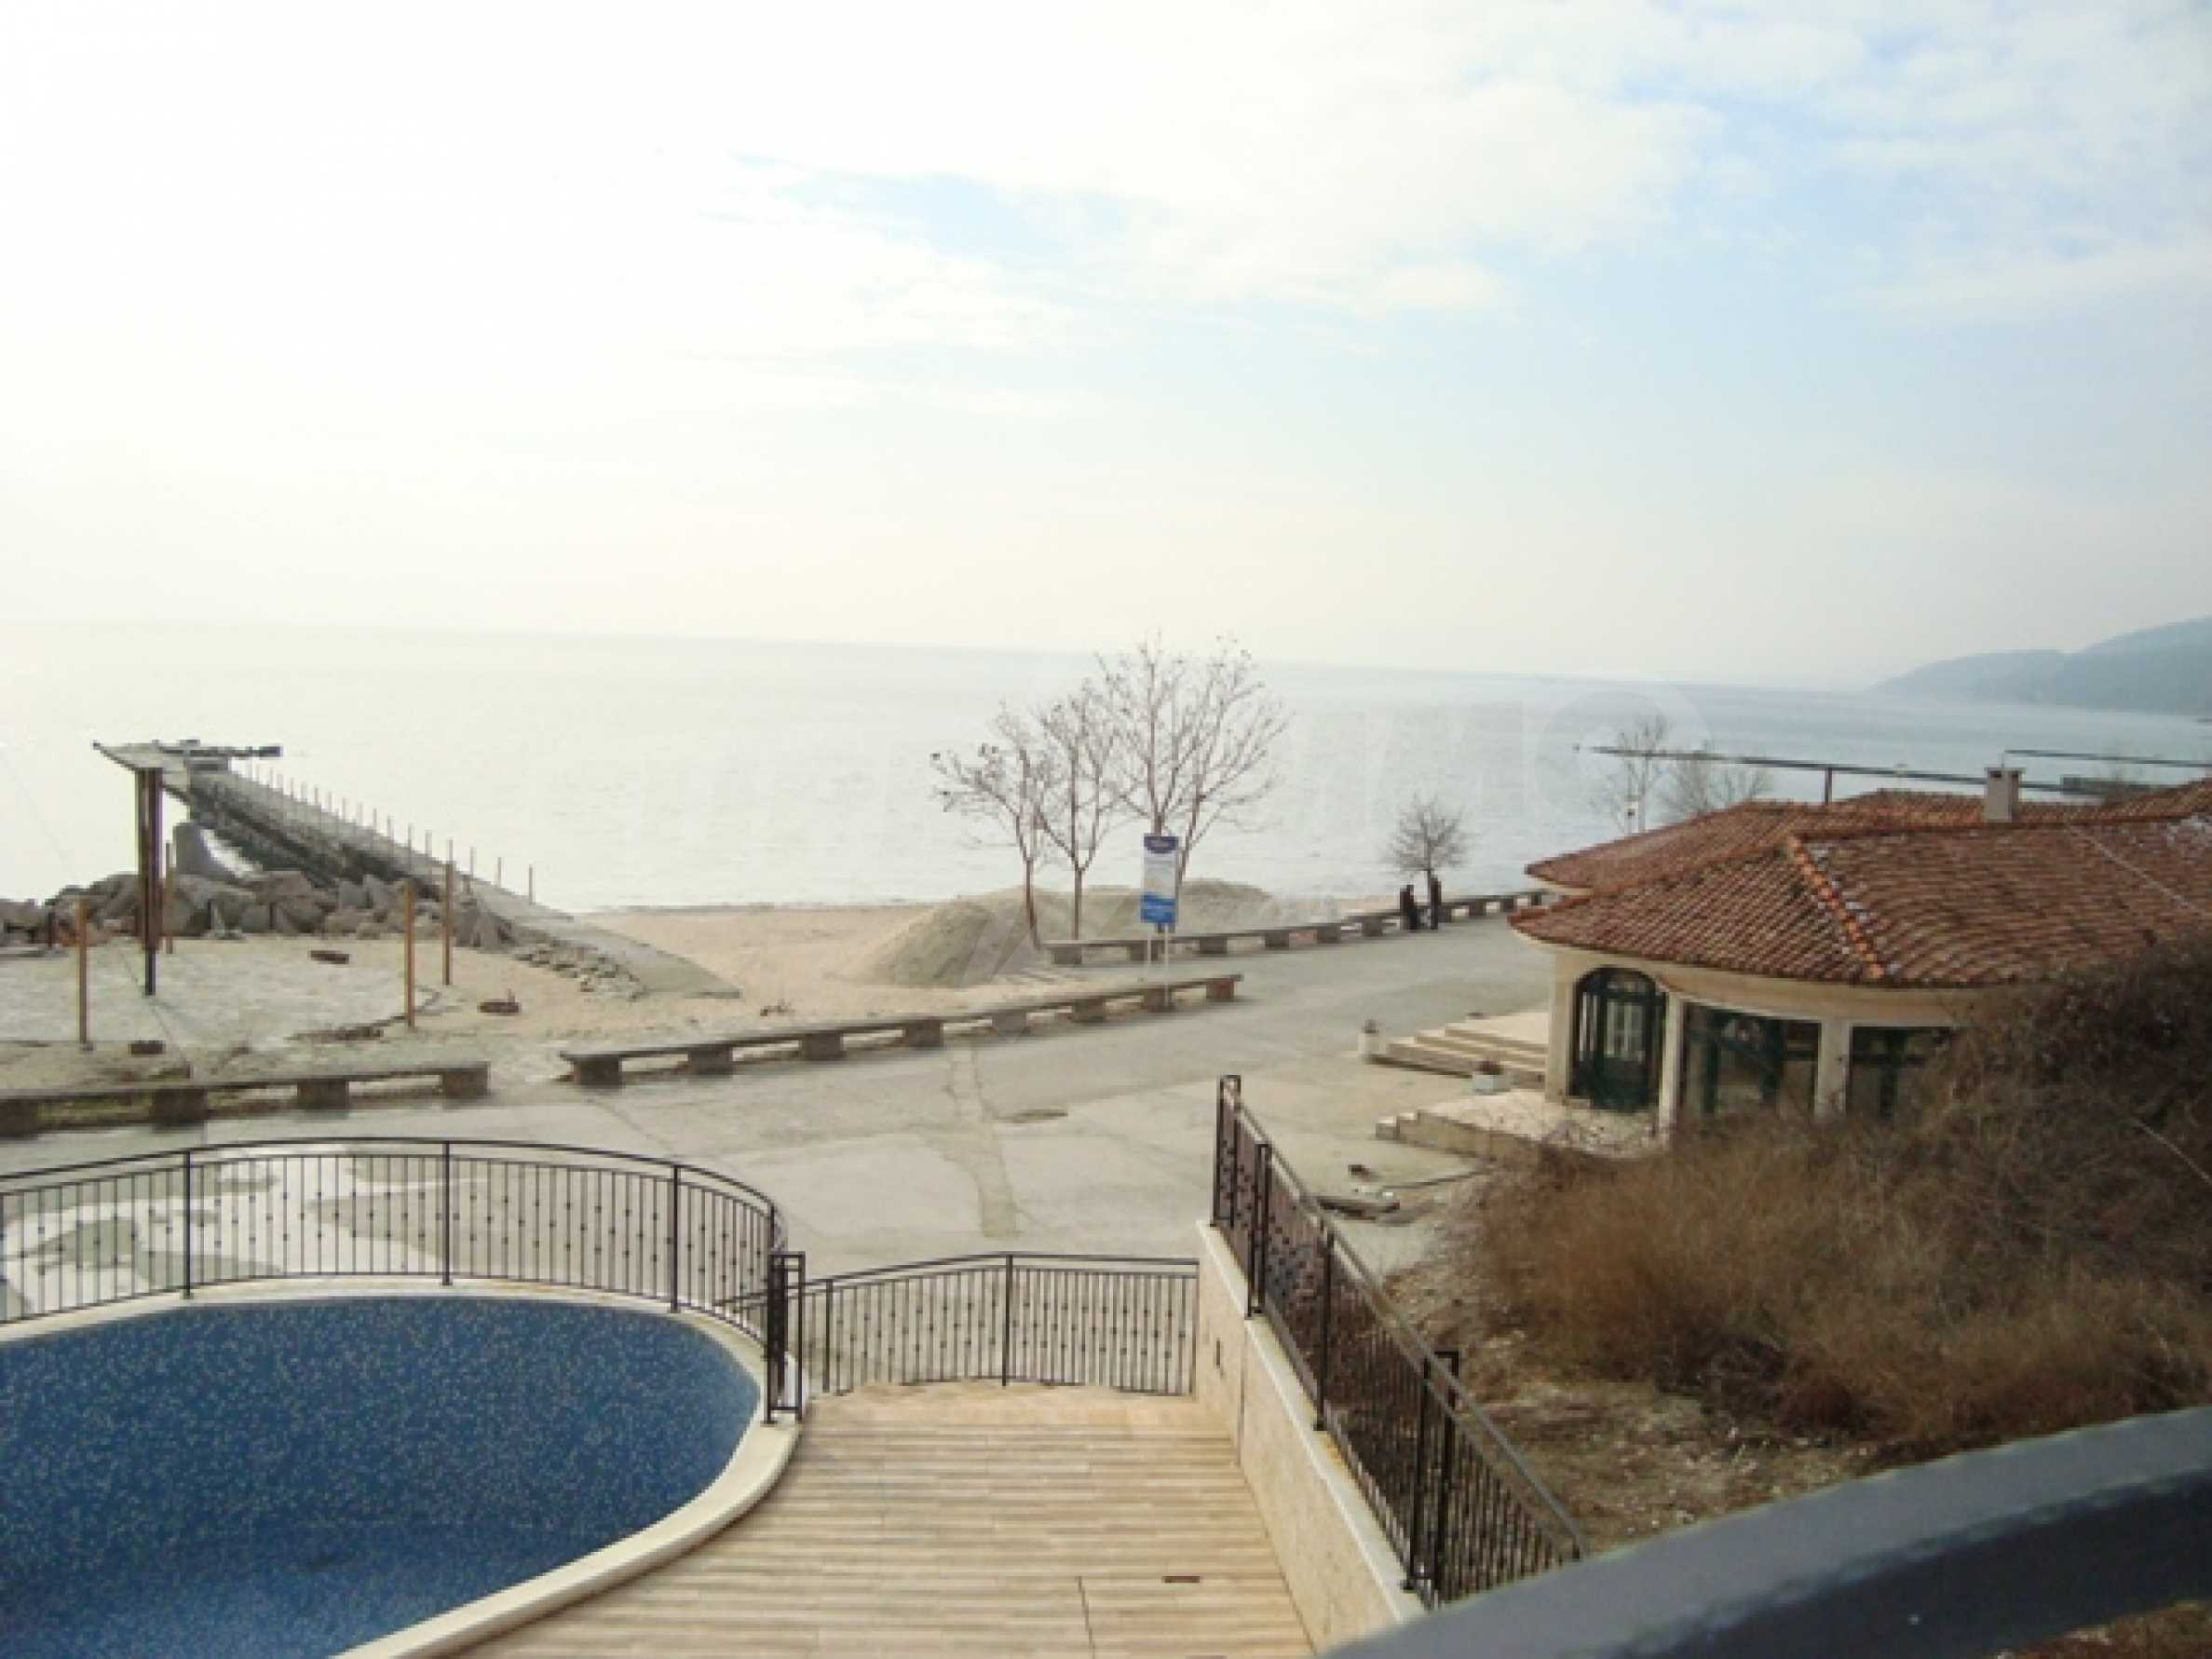 First line from the water in Balchik 15